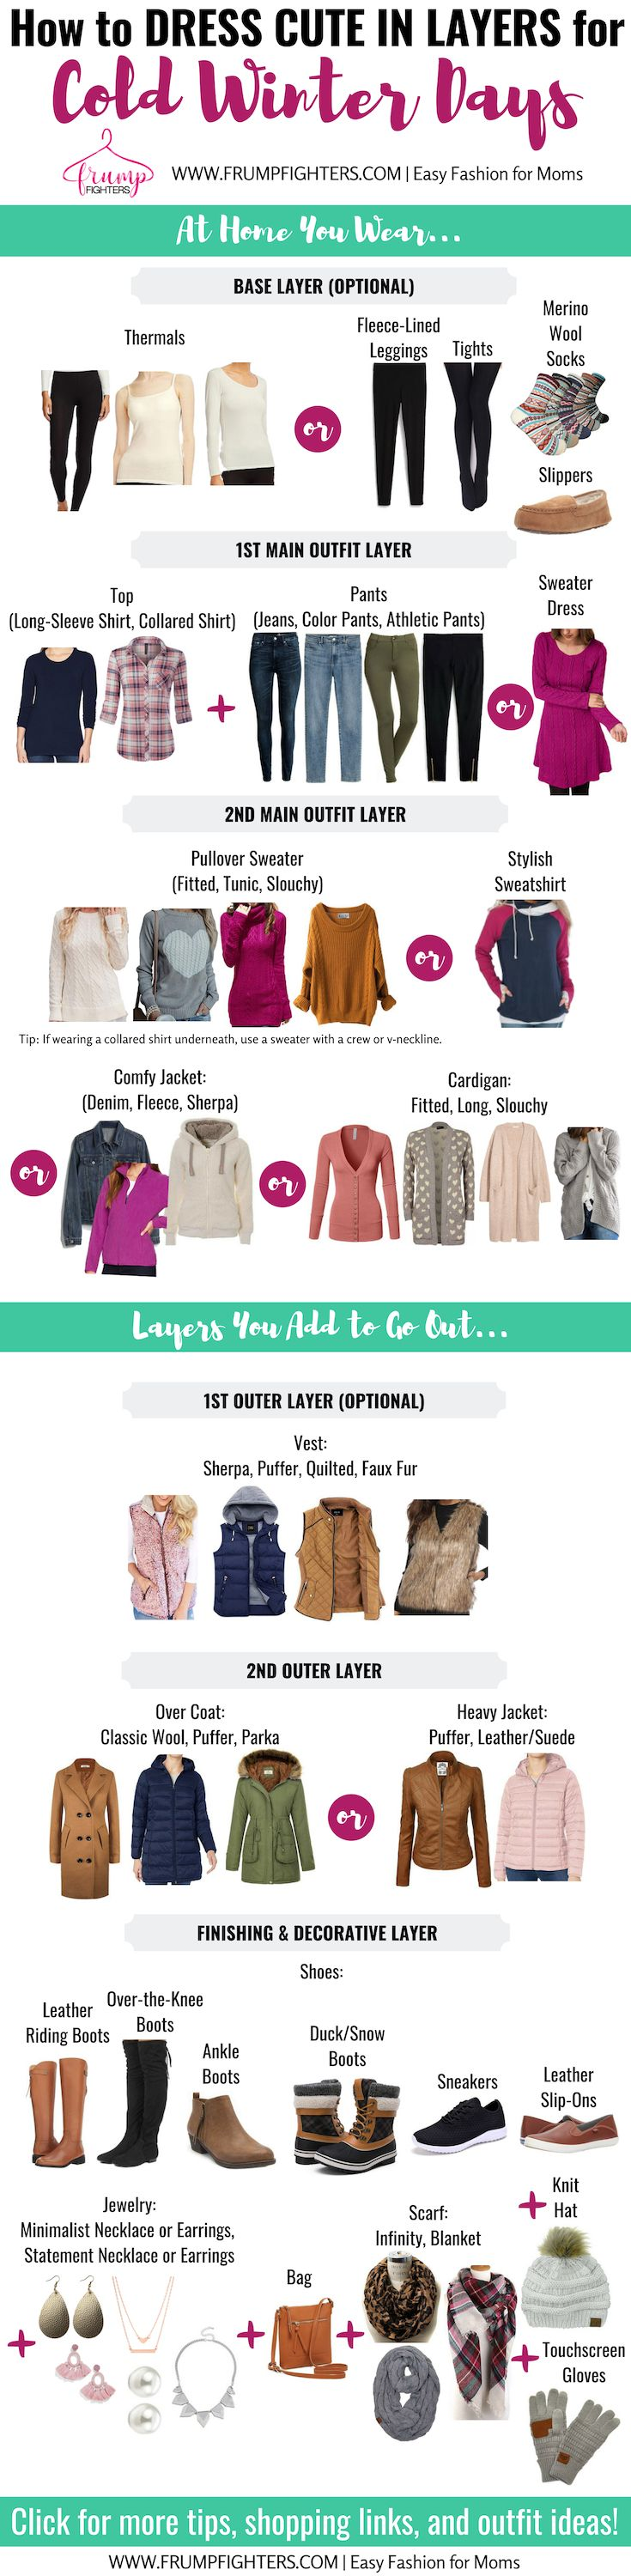 How to Dress Warm & Cute in Winter (Essentials List, Layering Tips, & Outfit Ideas